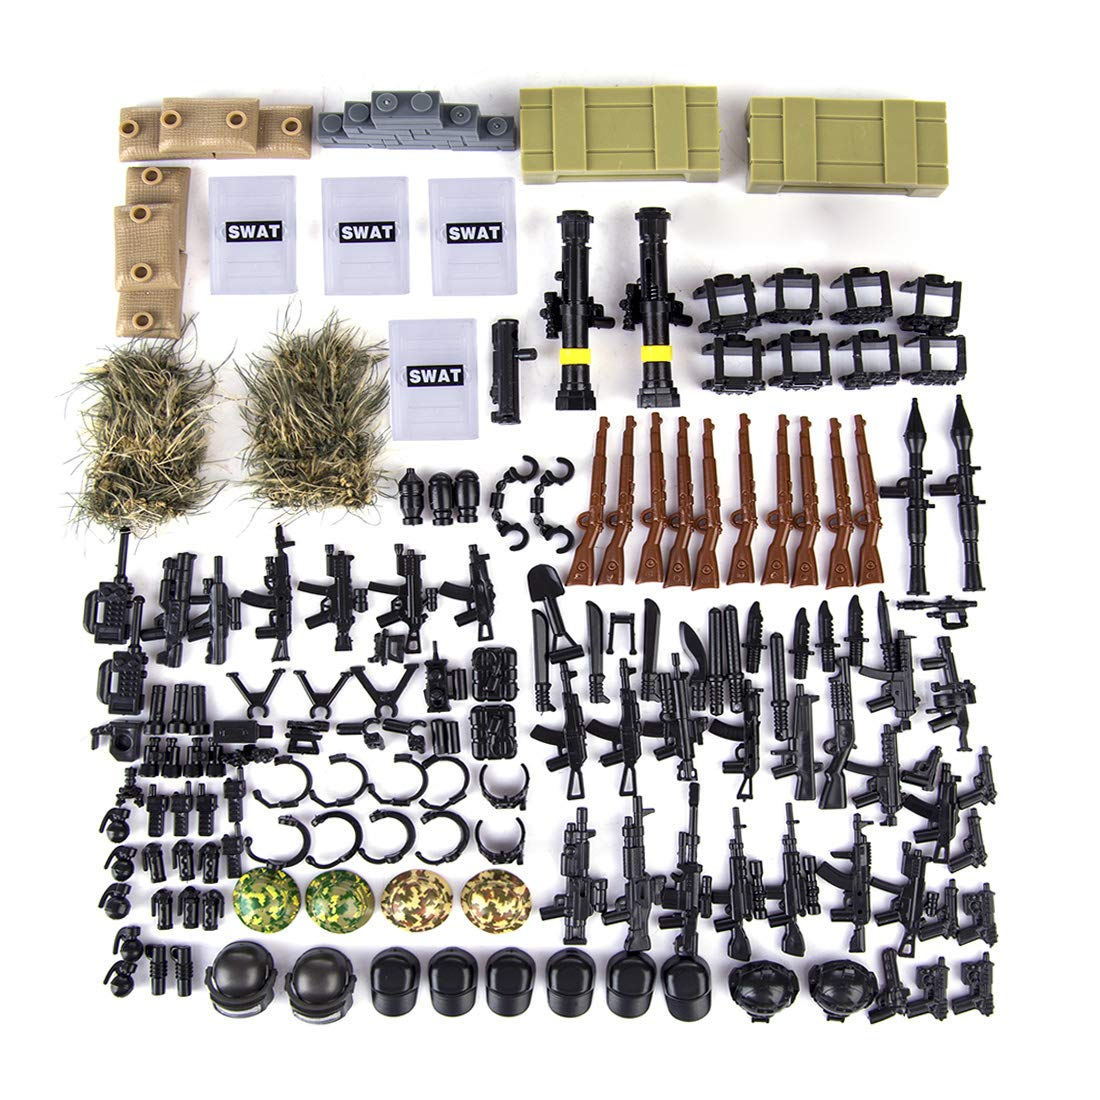 Lingxuinfo Military Accessories Building Compatible